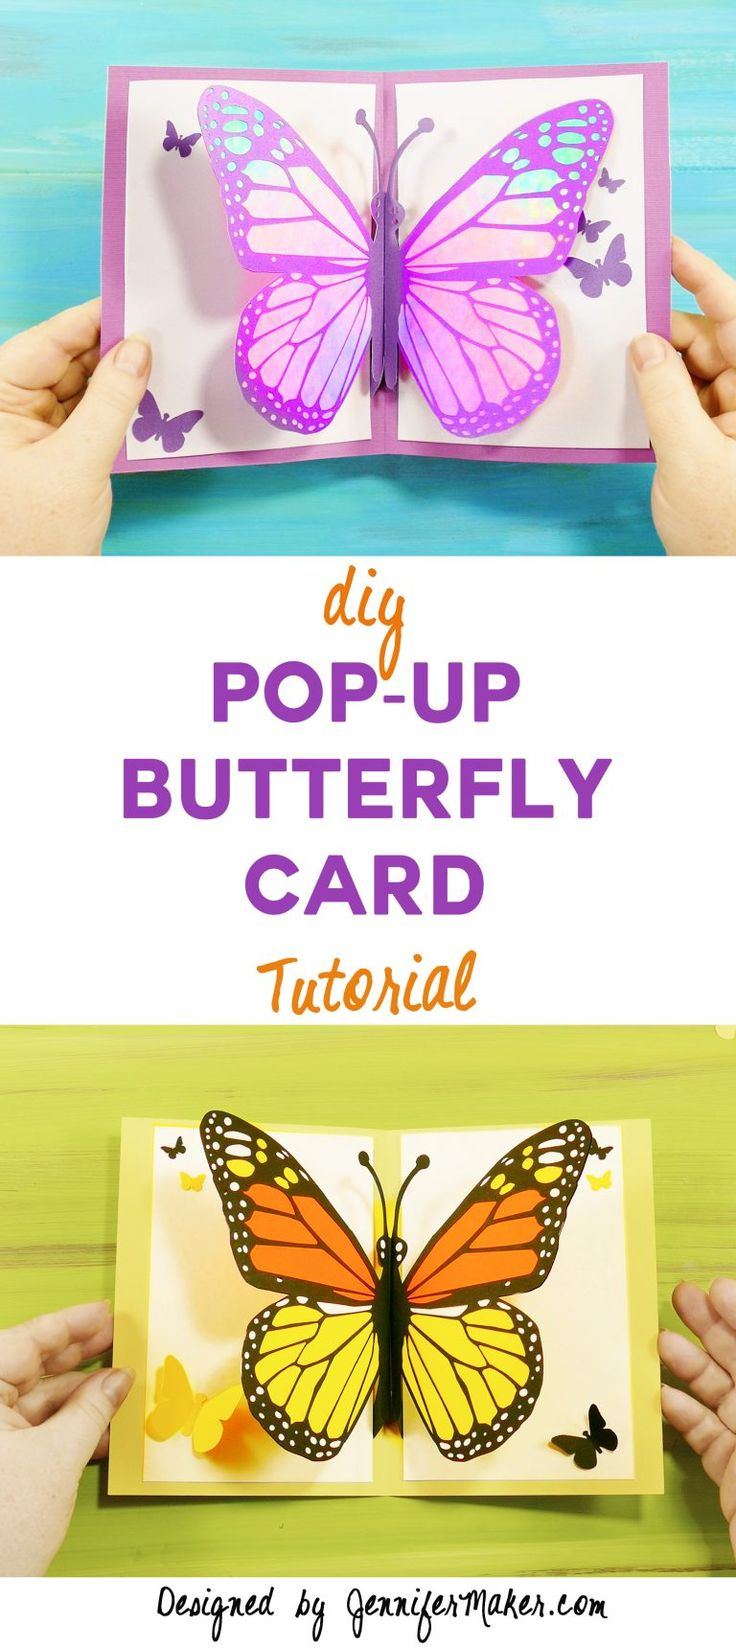 Free tutorial, files, and pattern to make a pop-up butterfly card!